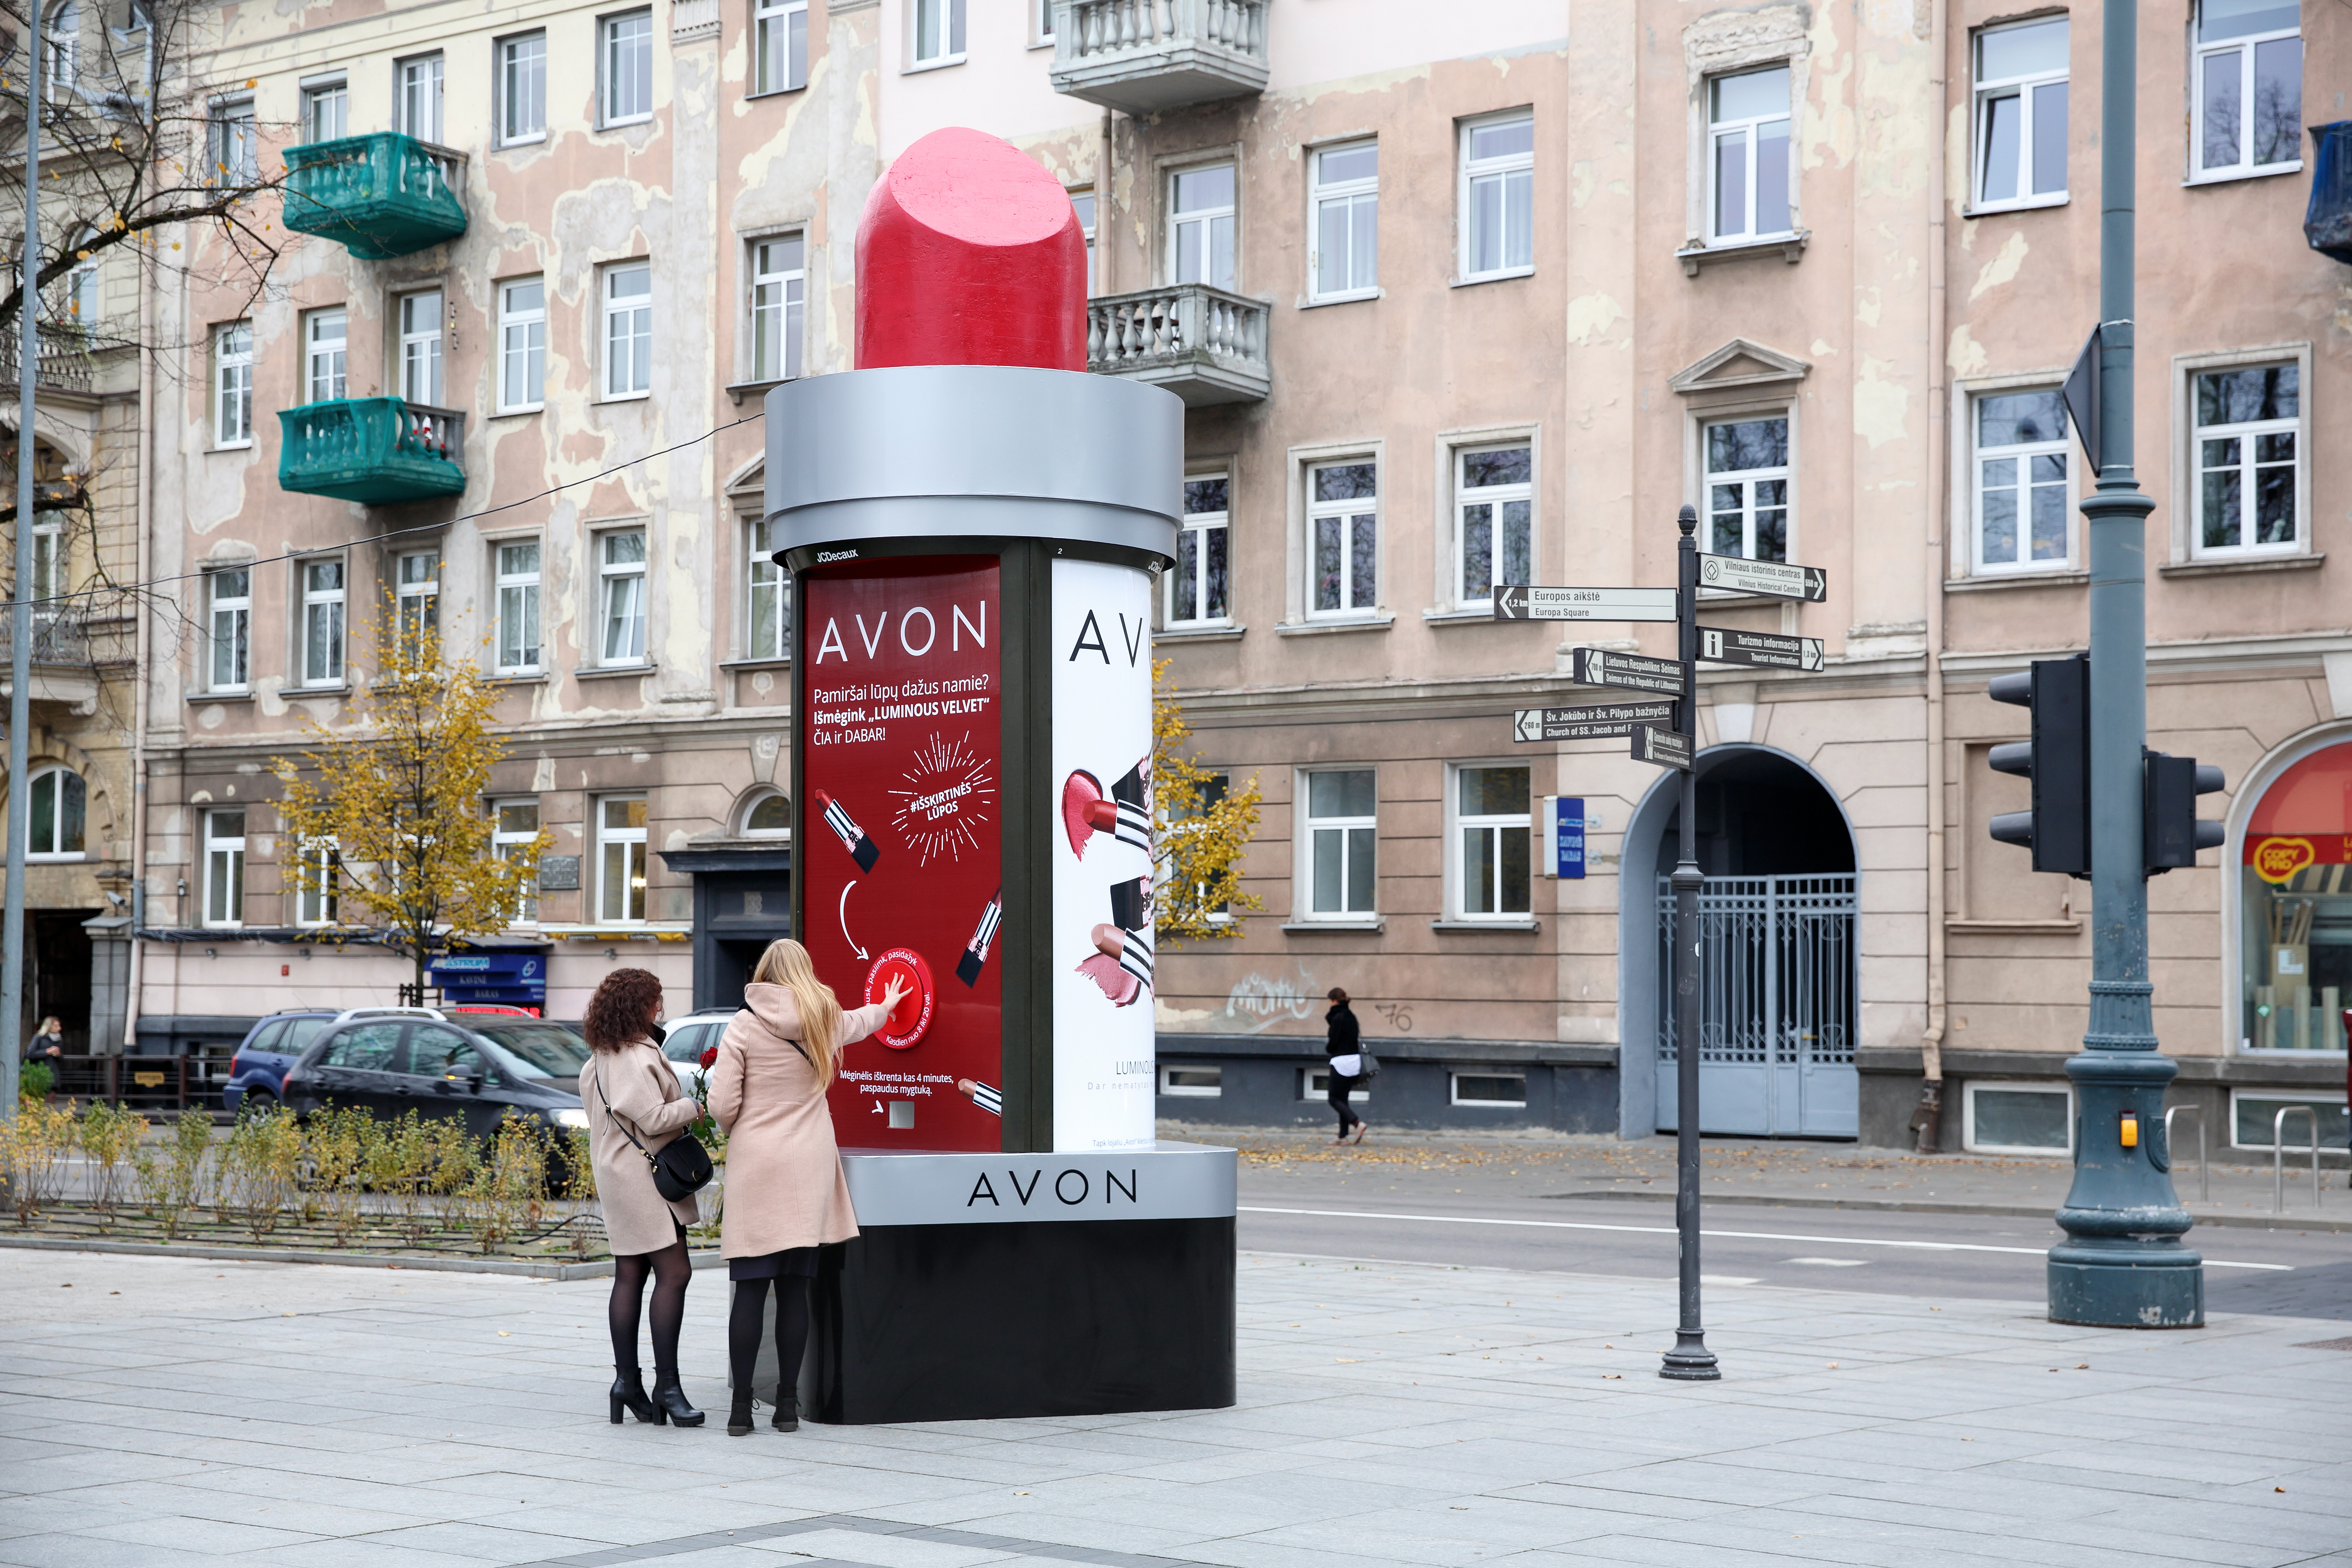 JCDecaux_Lithuania_Avon_OOH_campaign